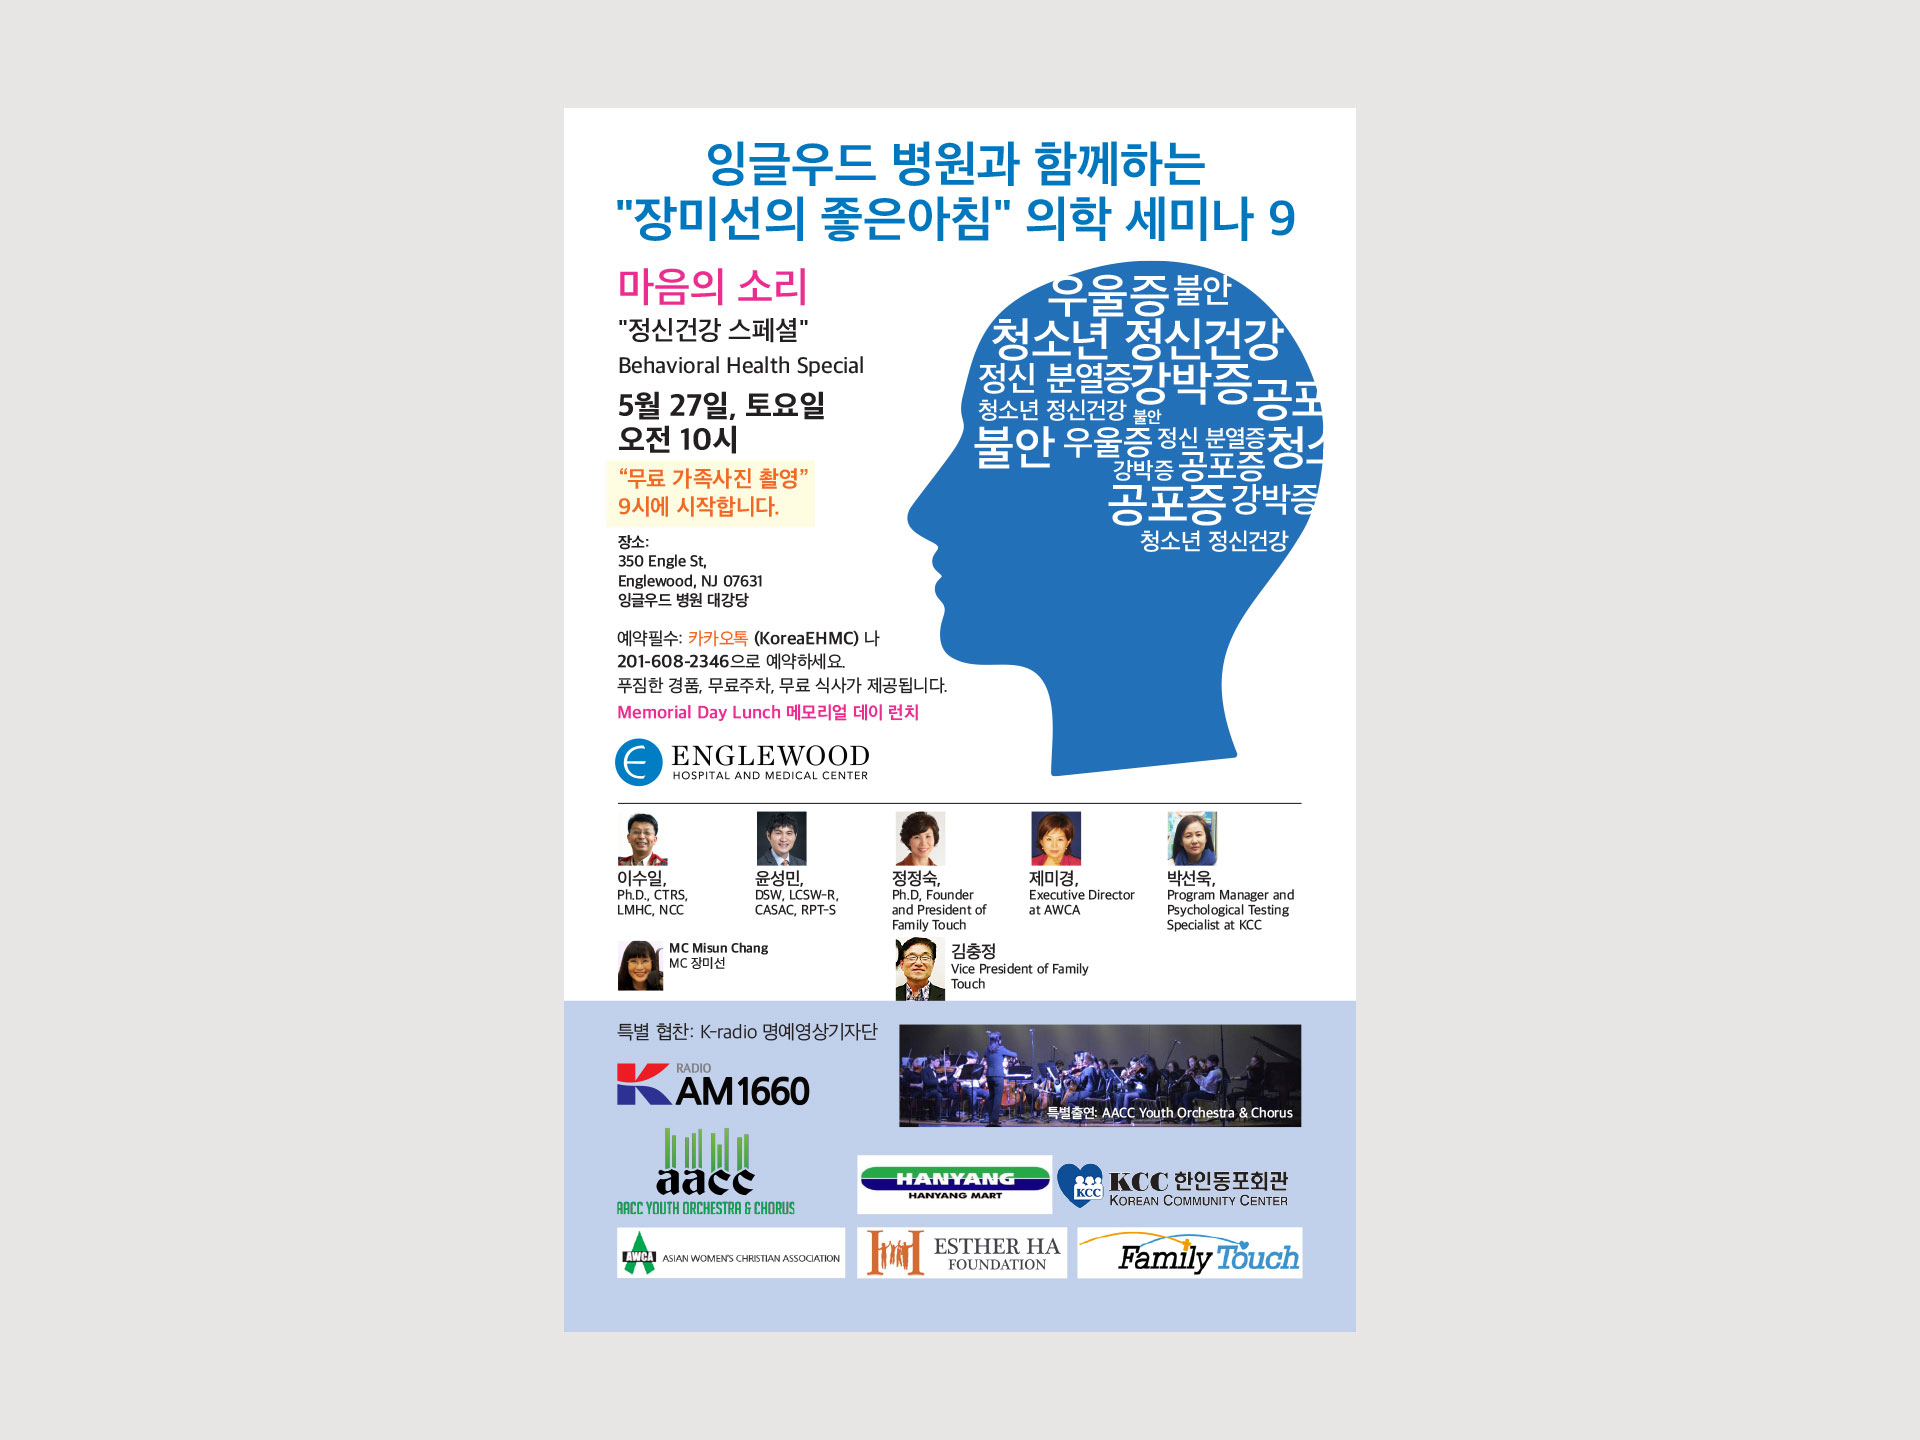 Korean Center event 9